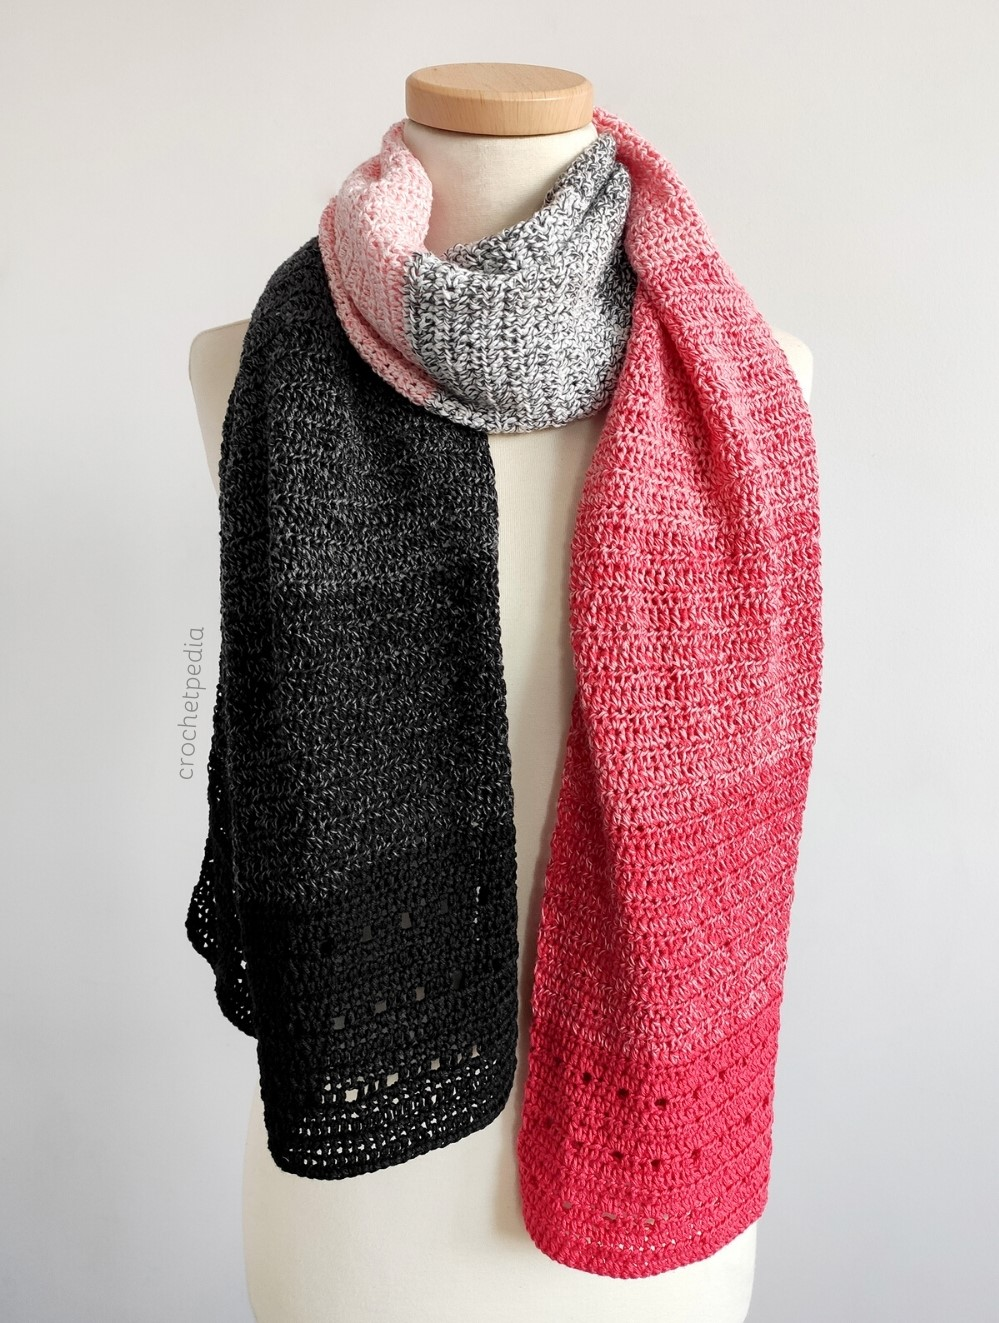 red and black crochet scarf draped on a mannequin